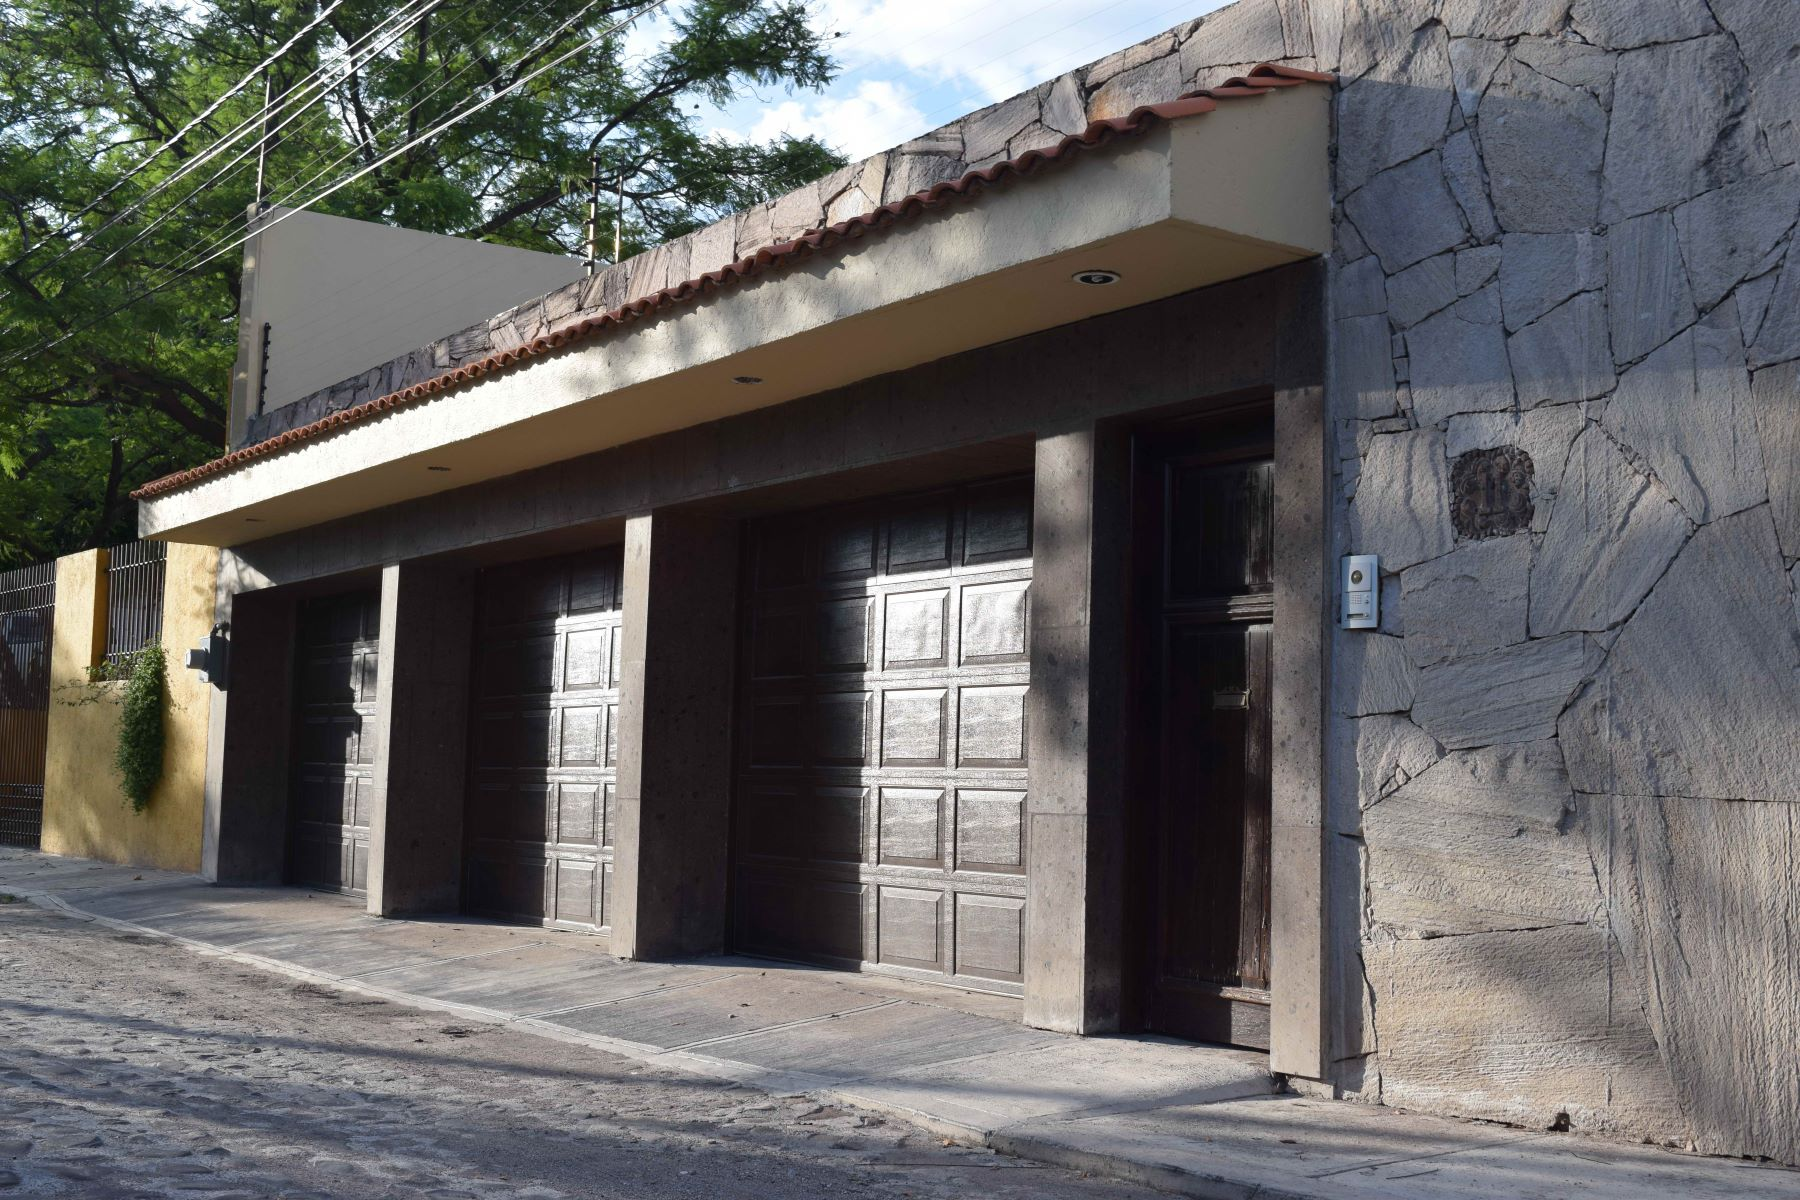 Single Family Home for Sale at Casa de Piedra Queretaro, Queretaro, Mexico